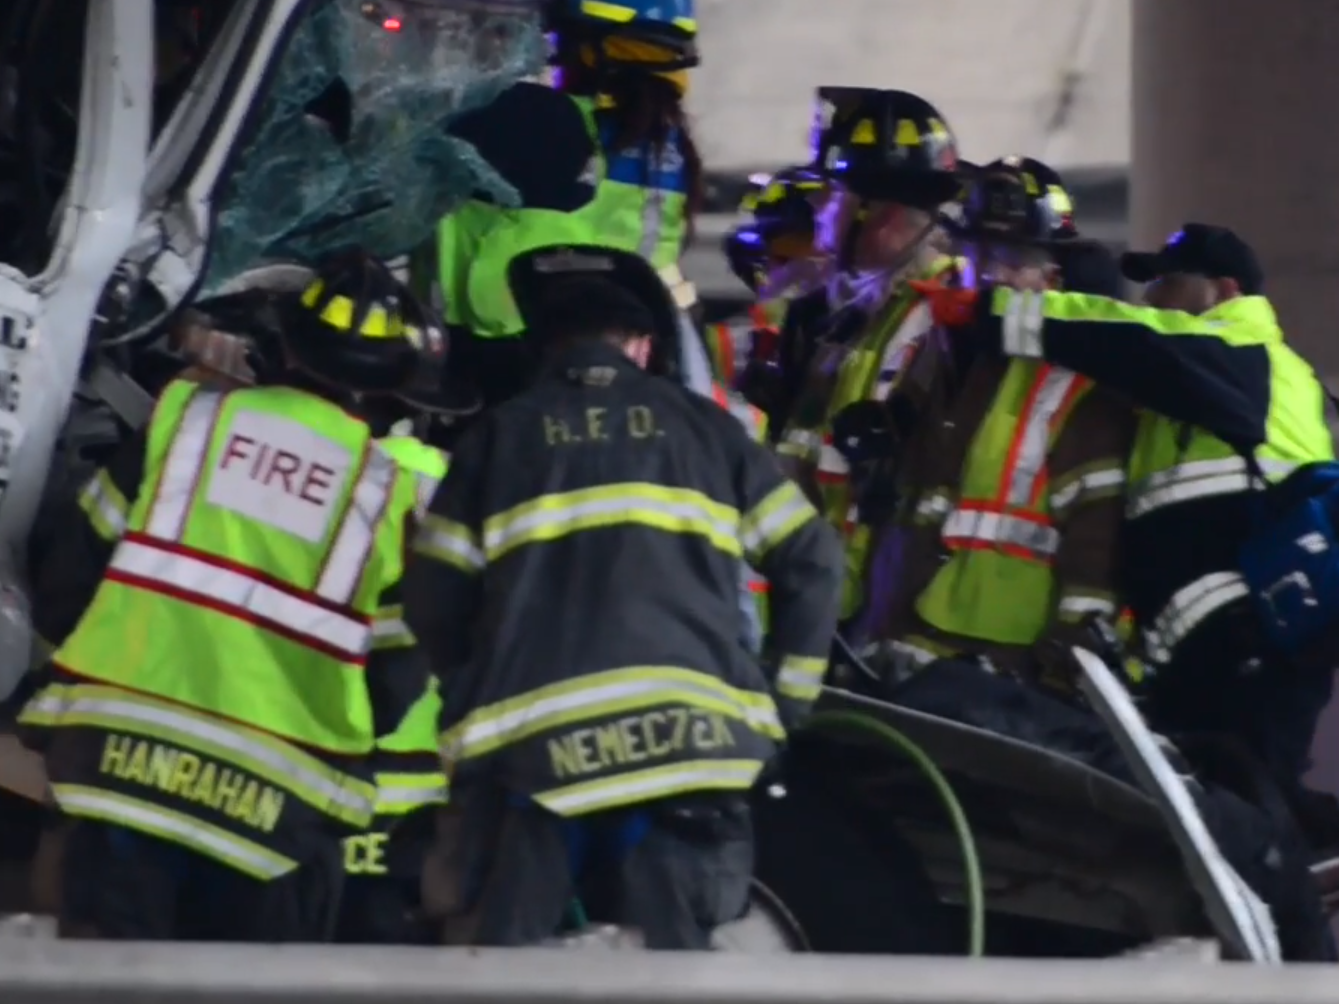 Emergency personnel attempt to extricate a person from the cab of truck on I-95 northbound in Teaneck on Monday February 11, 2019. The accident between two truck under the Degraw Ave overpass has stopped all express lane traffic.